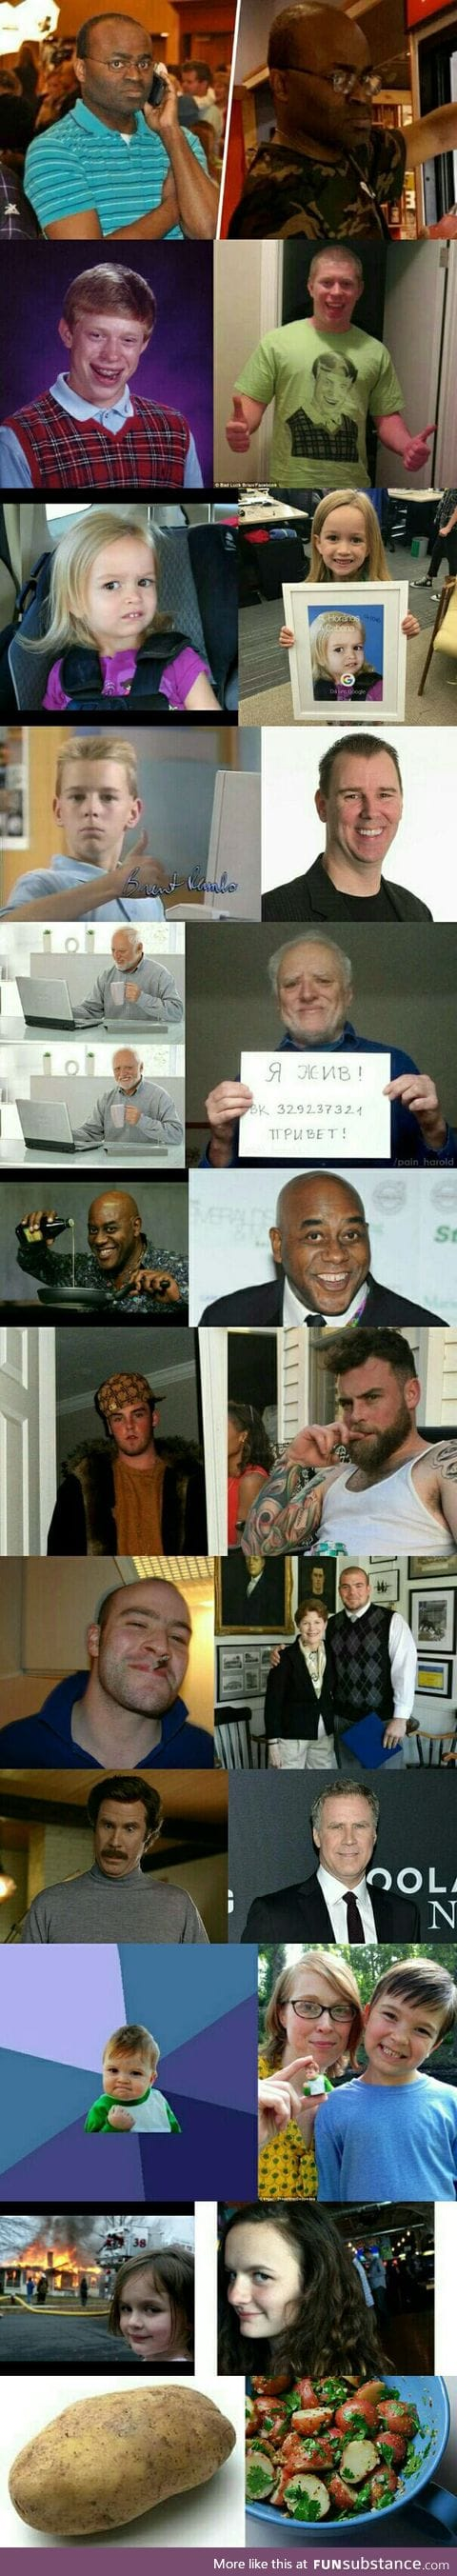 Here are the faces of some famous memes then and now